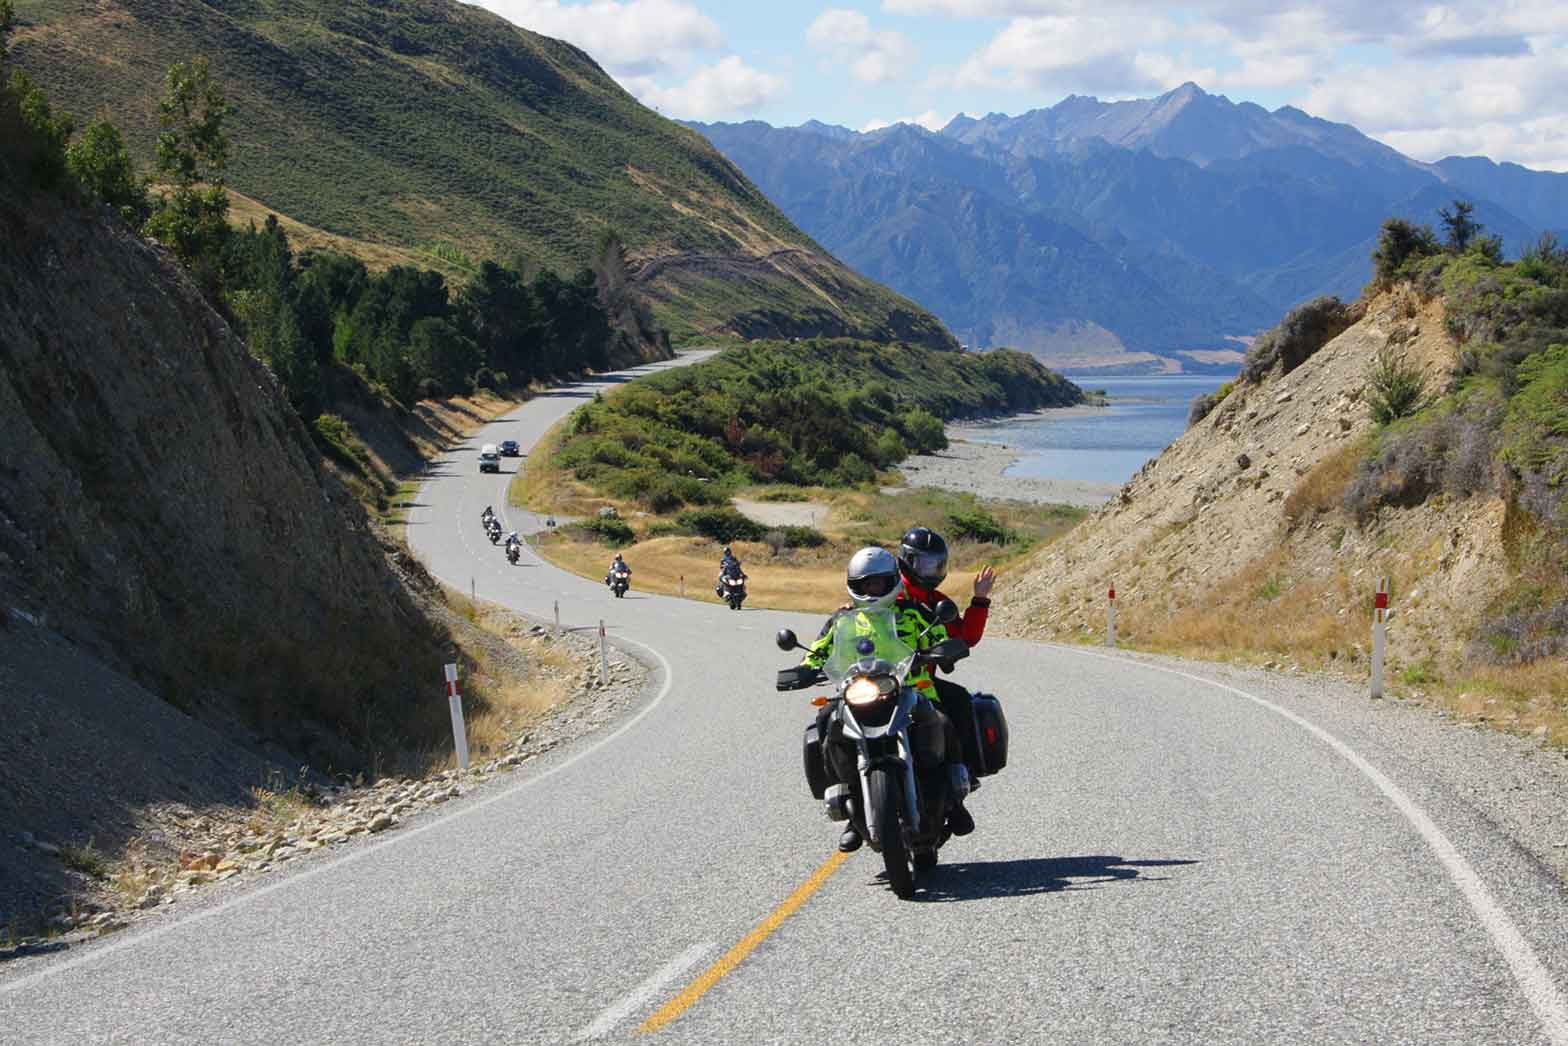 Riding New Zealand roads